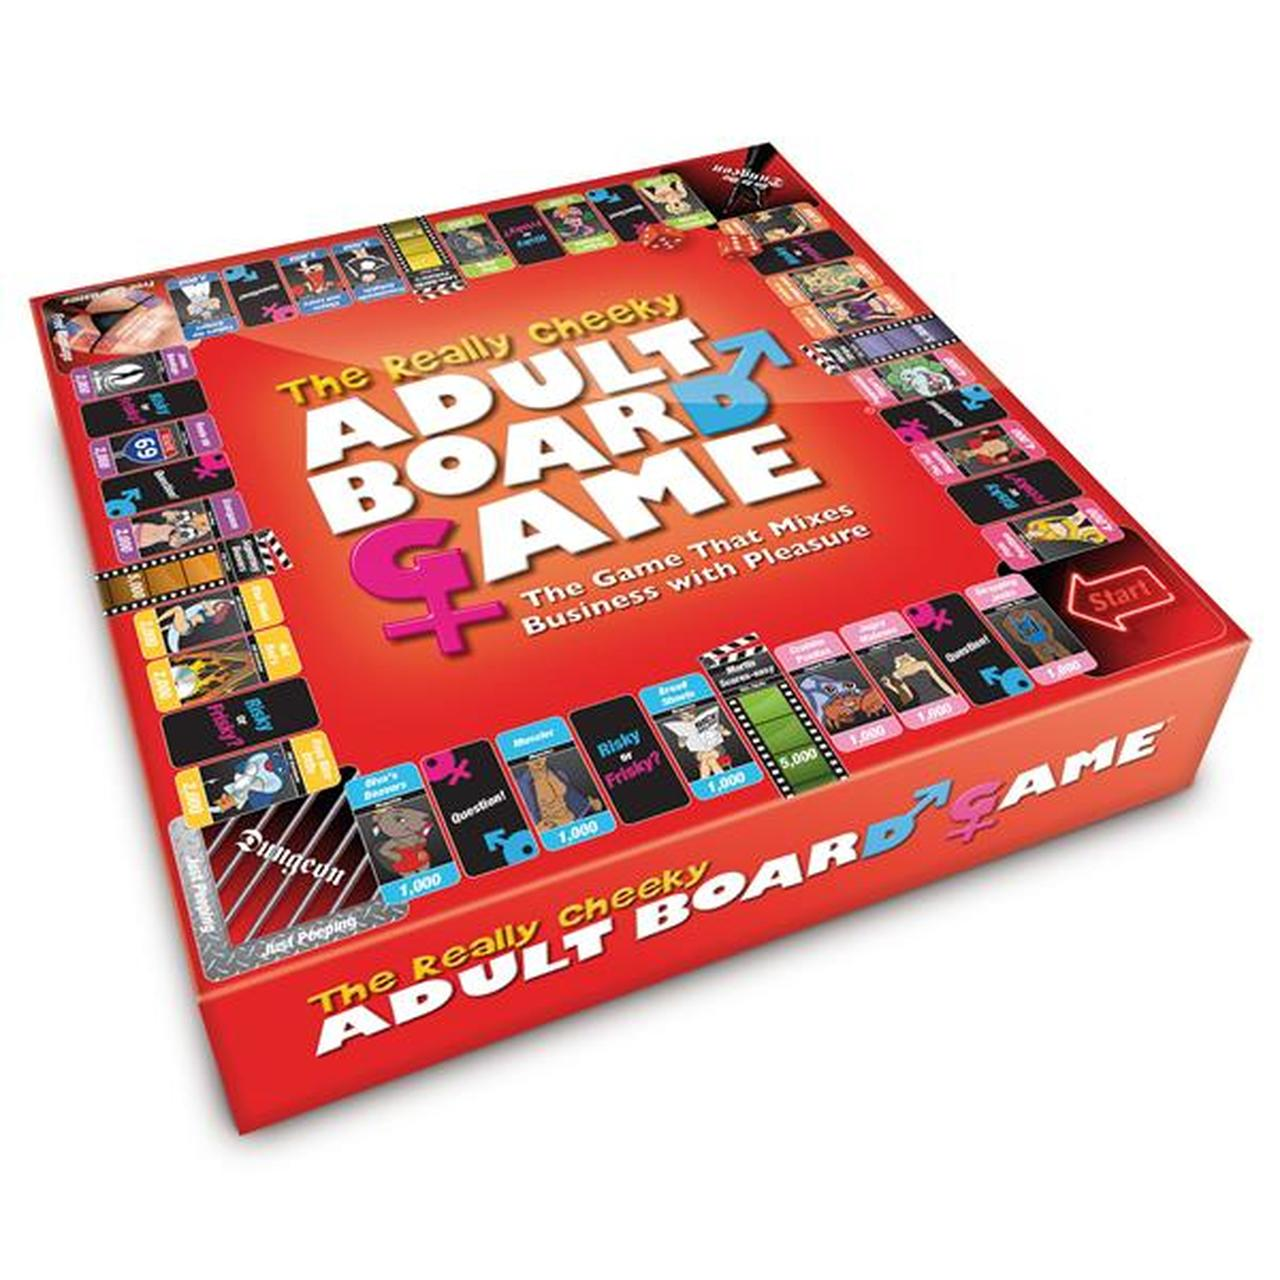 Creative Conceptions A Really Cheeky Adult Board Game for Friends 5037353000888 Boxview